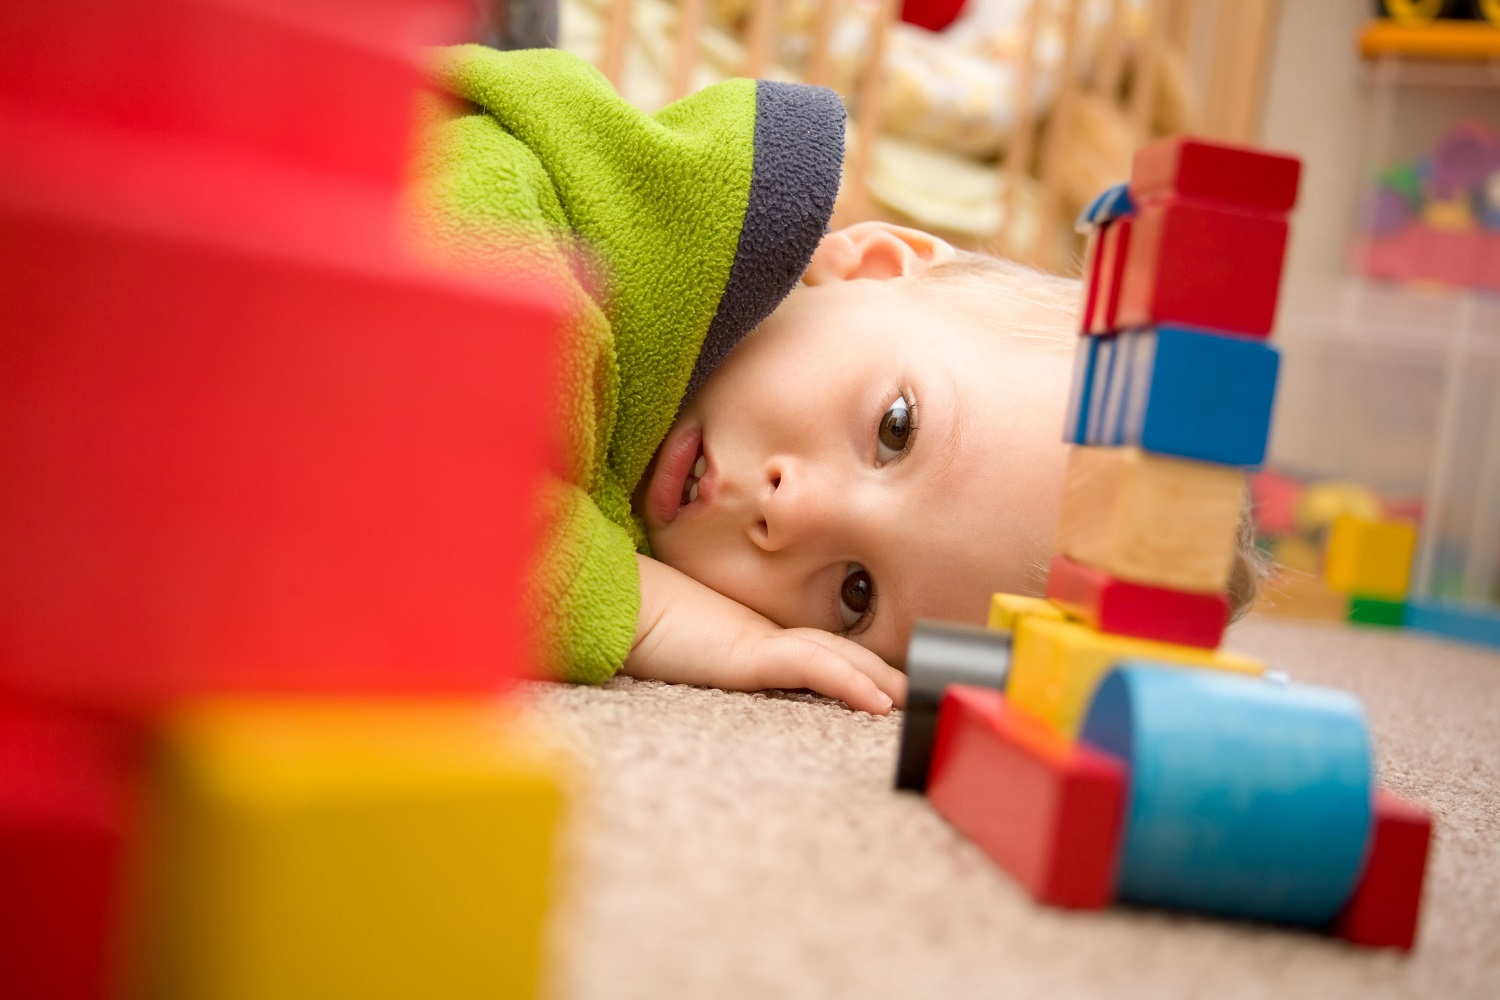 4783465 - sick boy is among the toys on the floor.